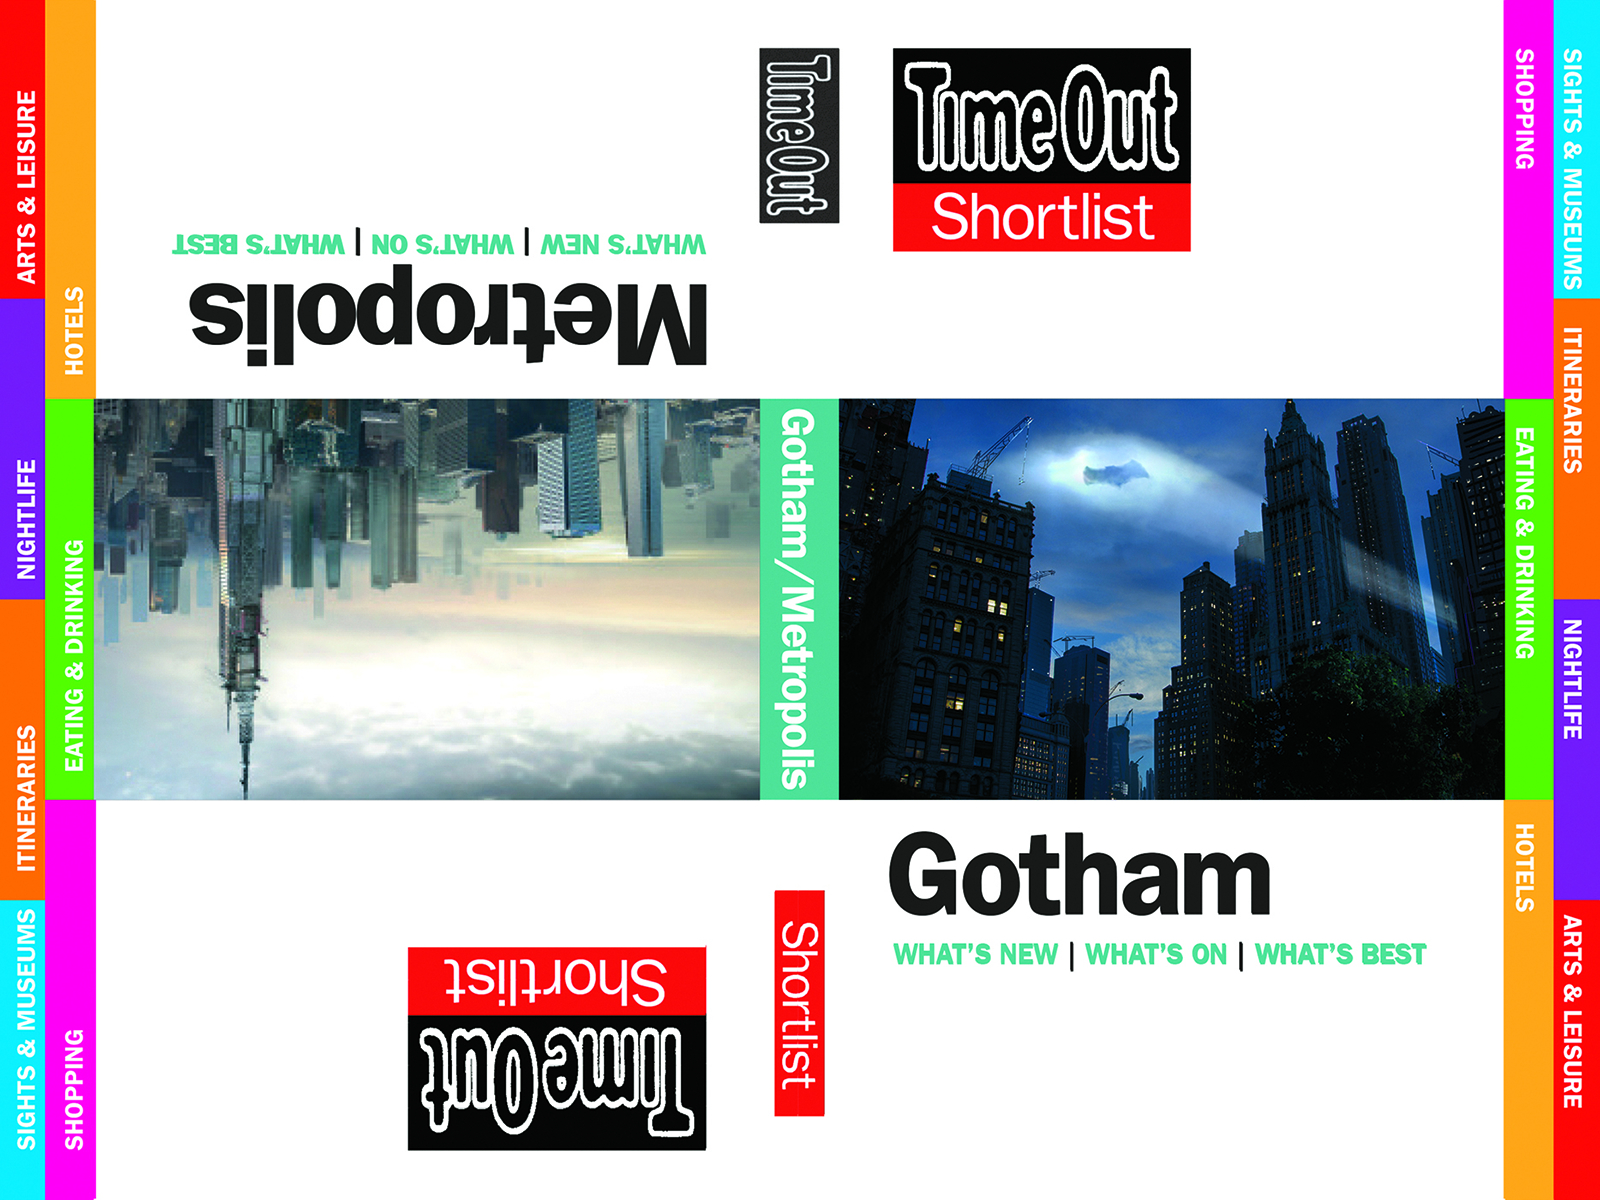 TIME OUT SHORTLIST GOTHAM METROPOLIS GUIDEBOOK